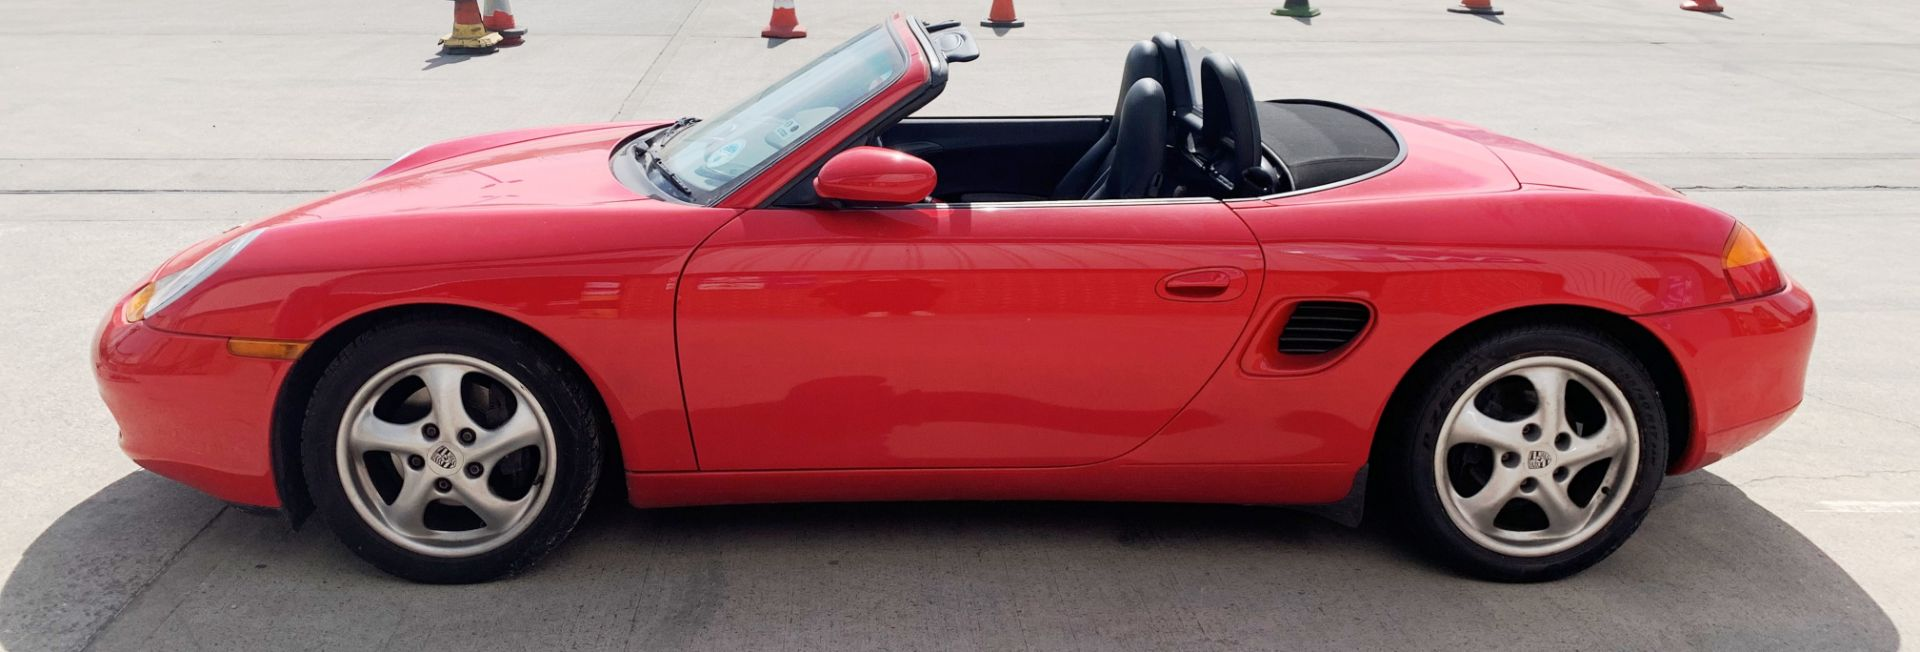 From a deceased estate: PORSCHE BOXSTER 2.5 CONVERTIBLE - Image 3 of 25